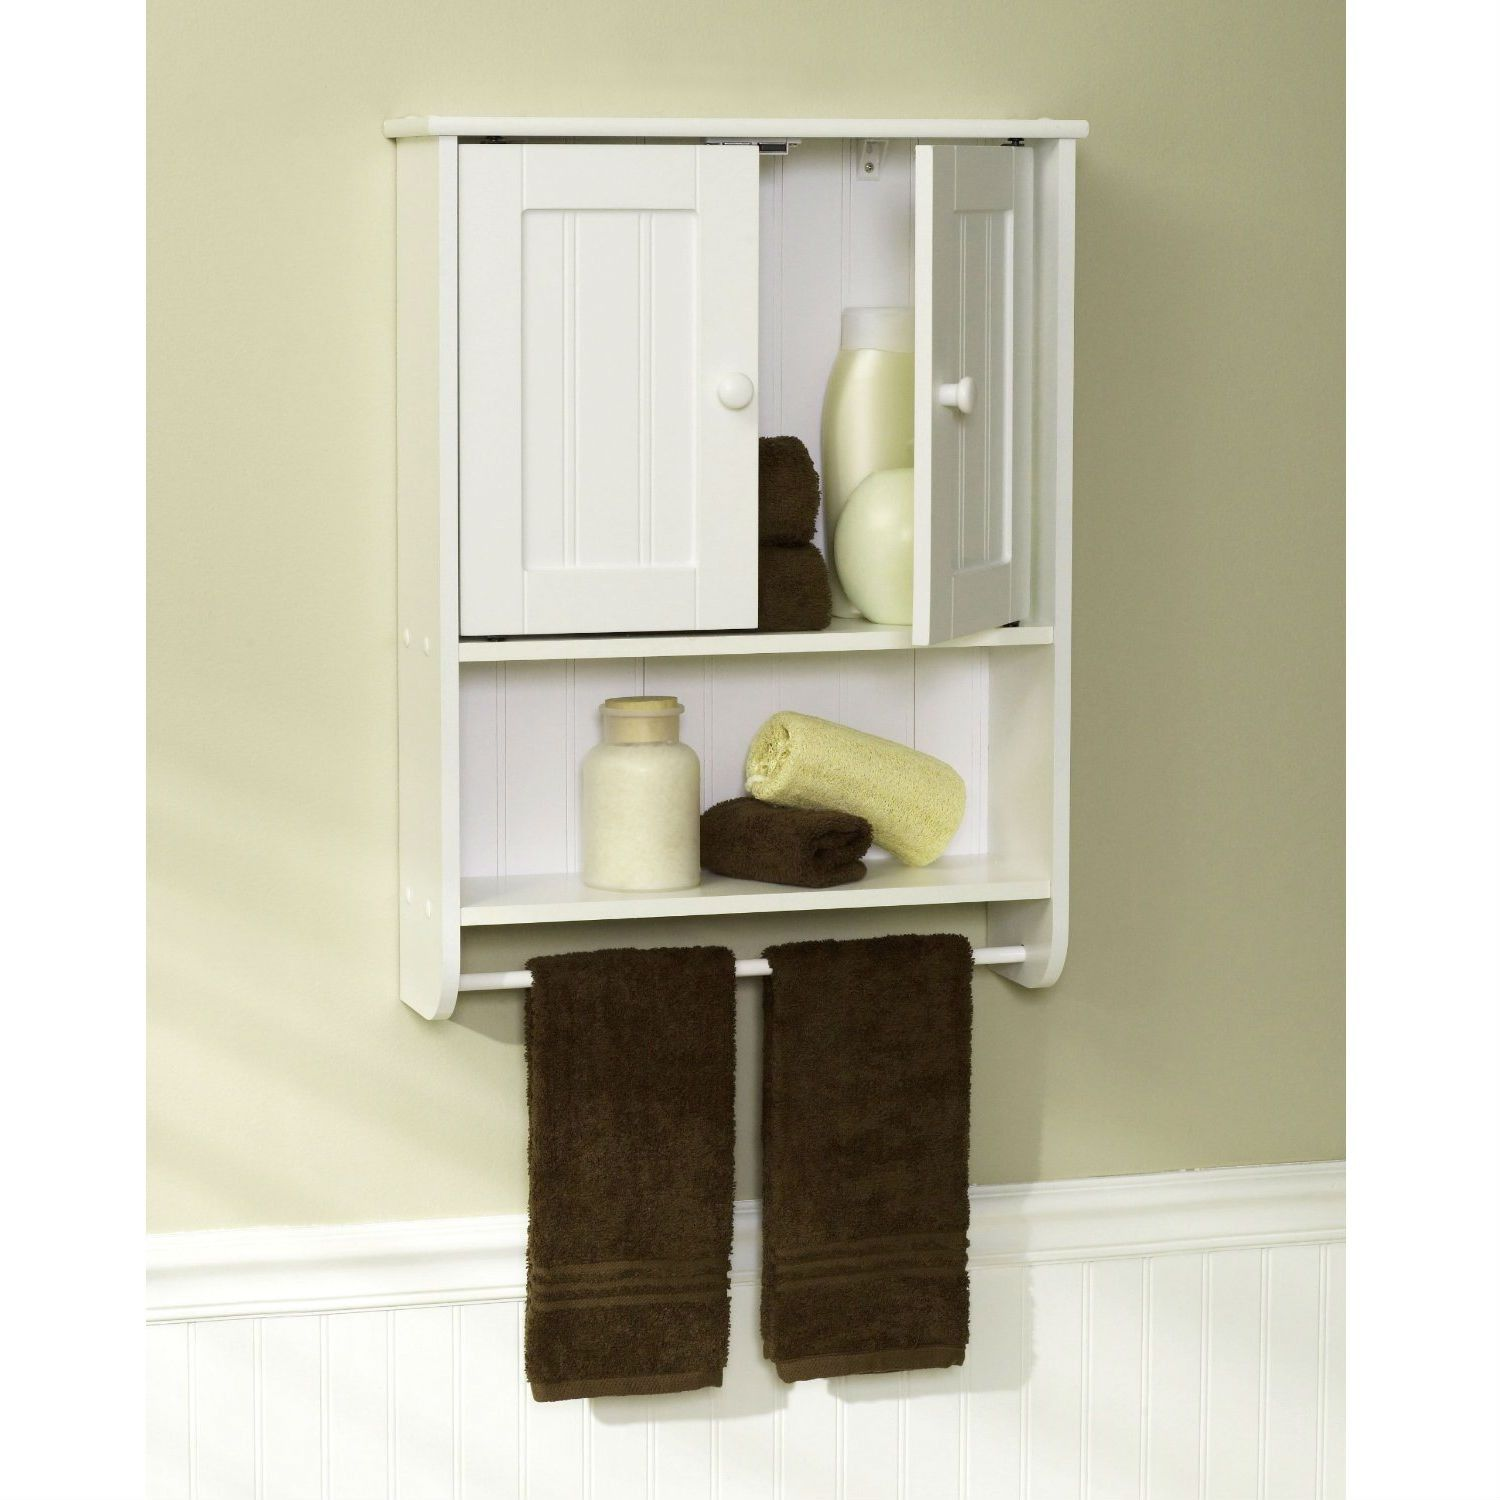 Wall Mount Bathroom Cabinet with Towel Bar in White Finish | Room ...